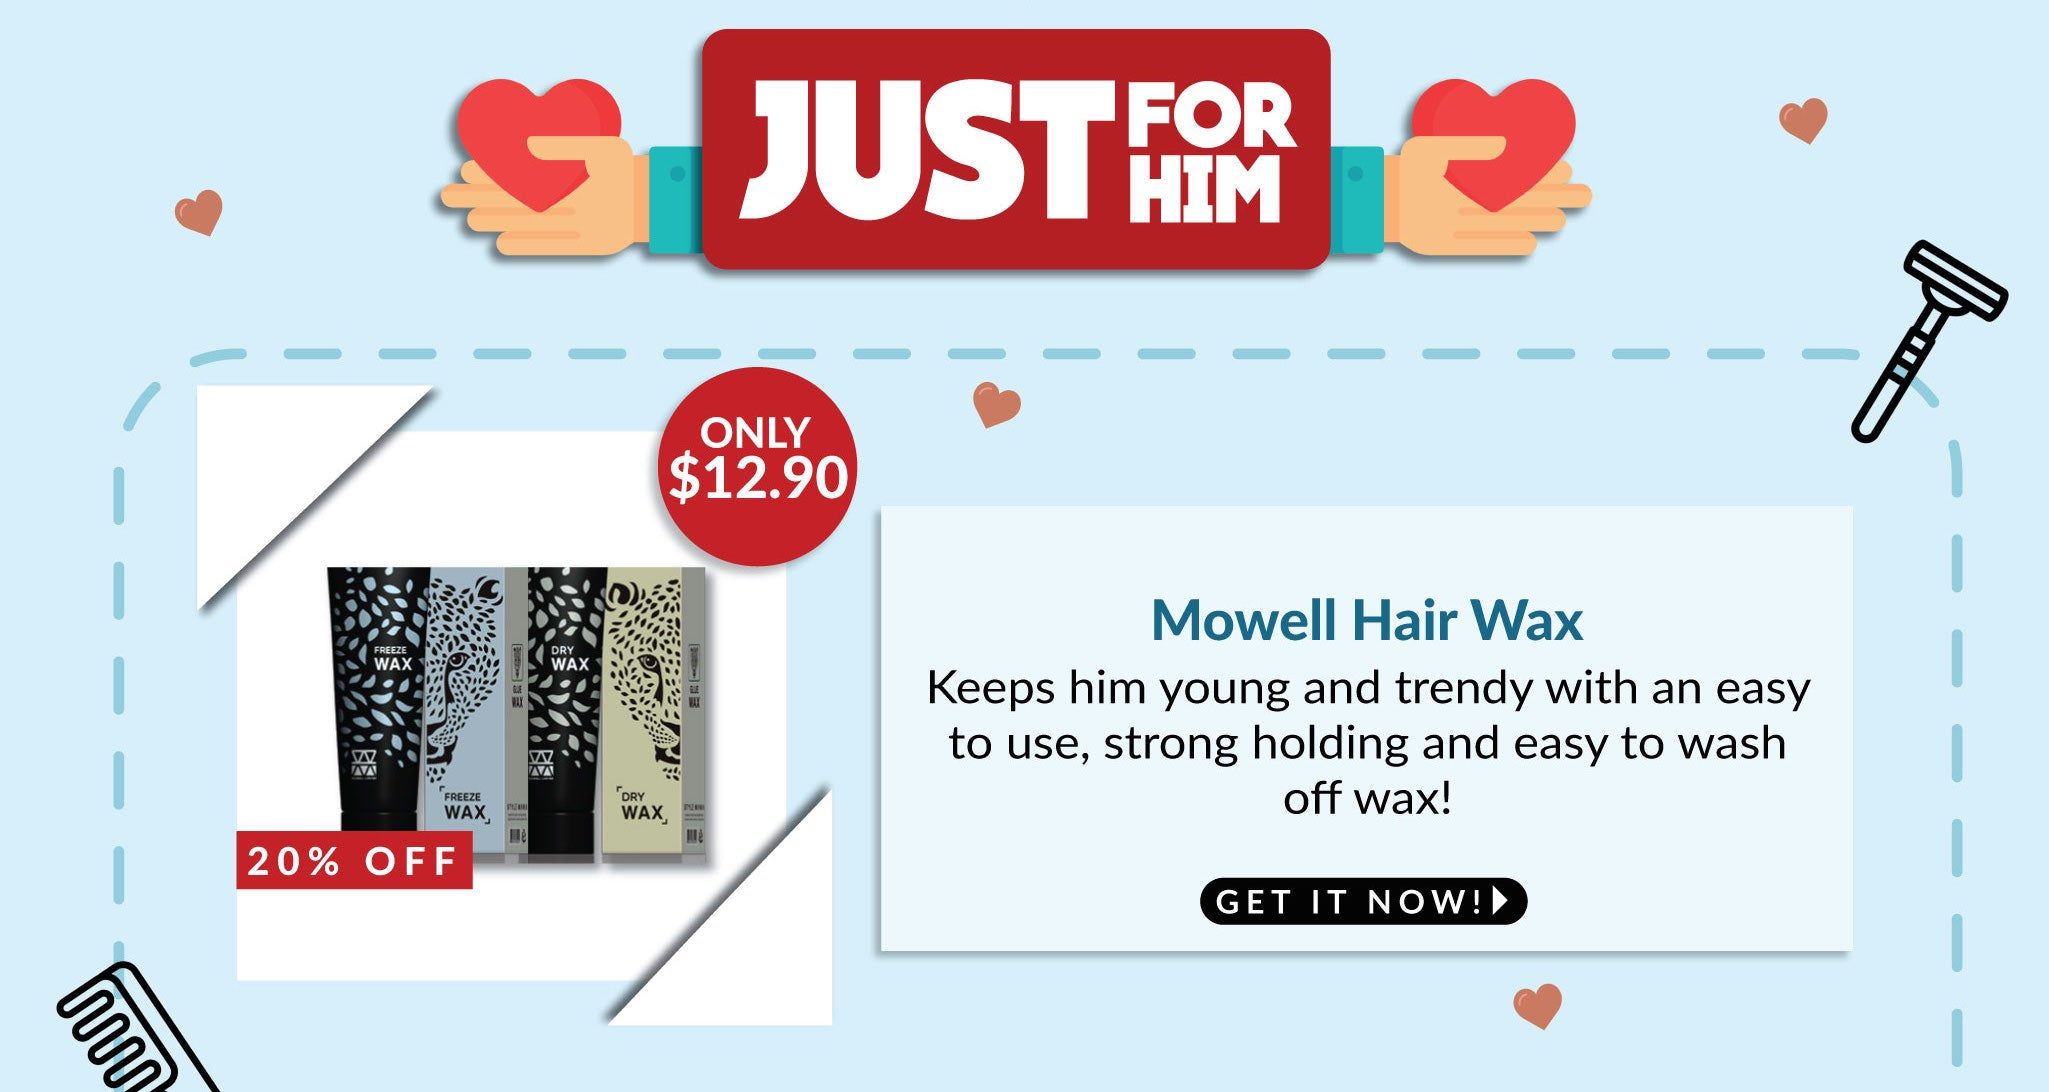 Mowell Hair Wax - 20% OFF